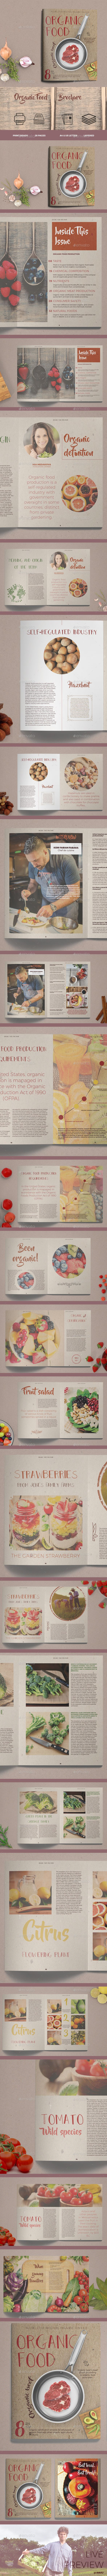 Organic Food Brochure - InDesign Template • Only available here ➝ http://graphicriver.net/item/organic-food-brochure/16916968?ref=pxcr